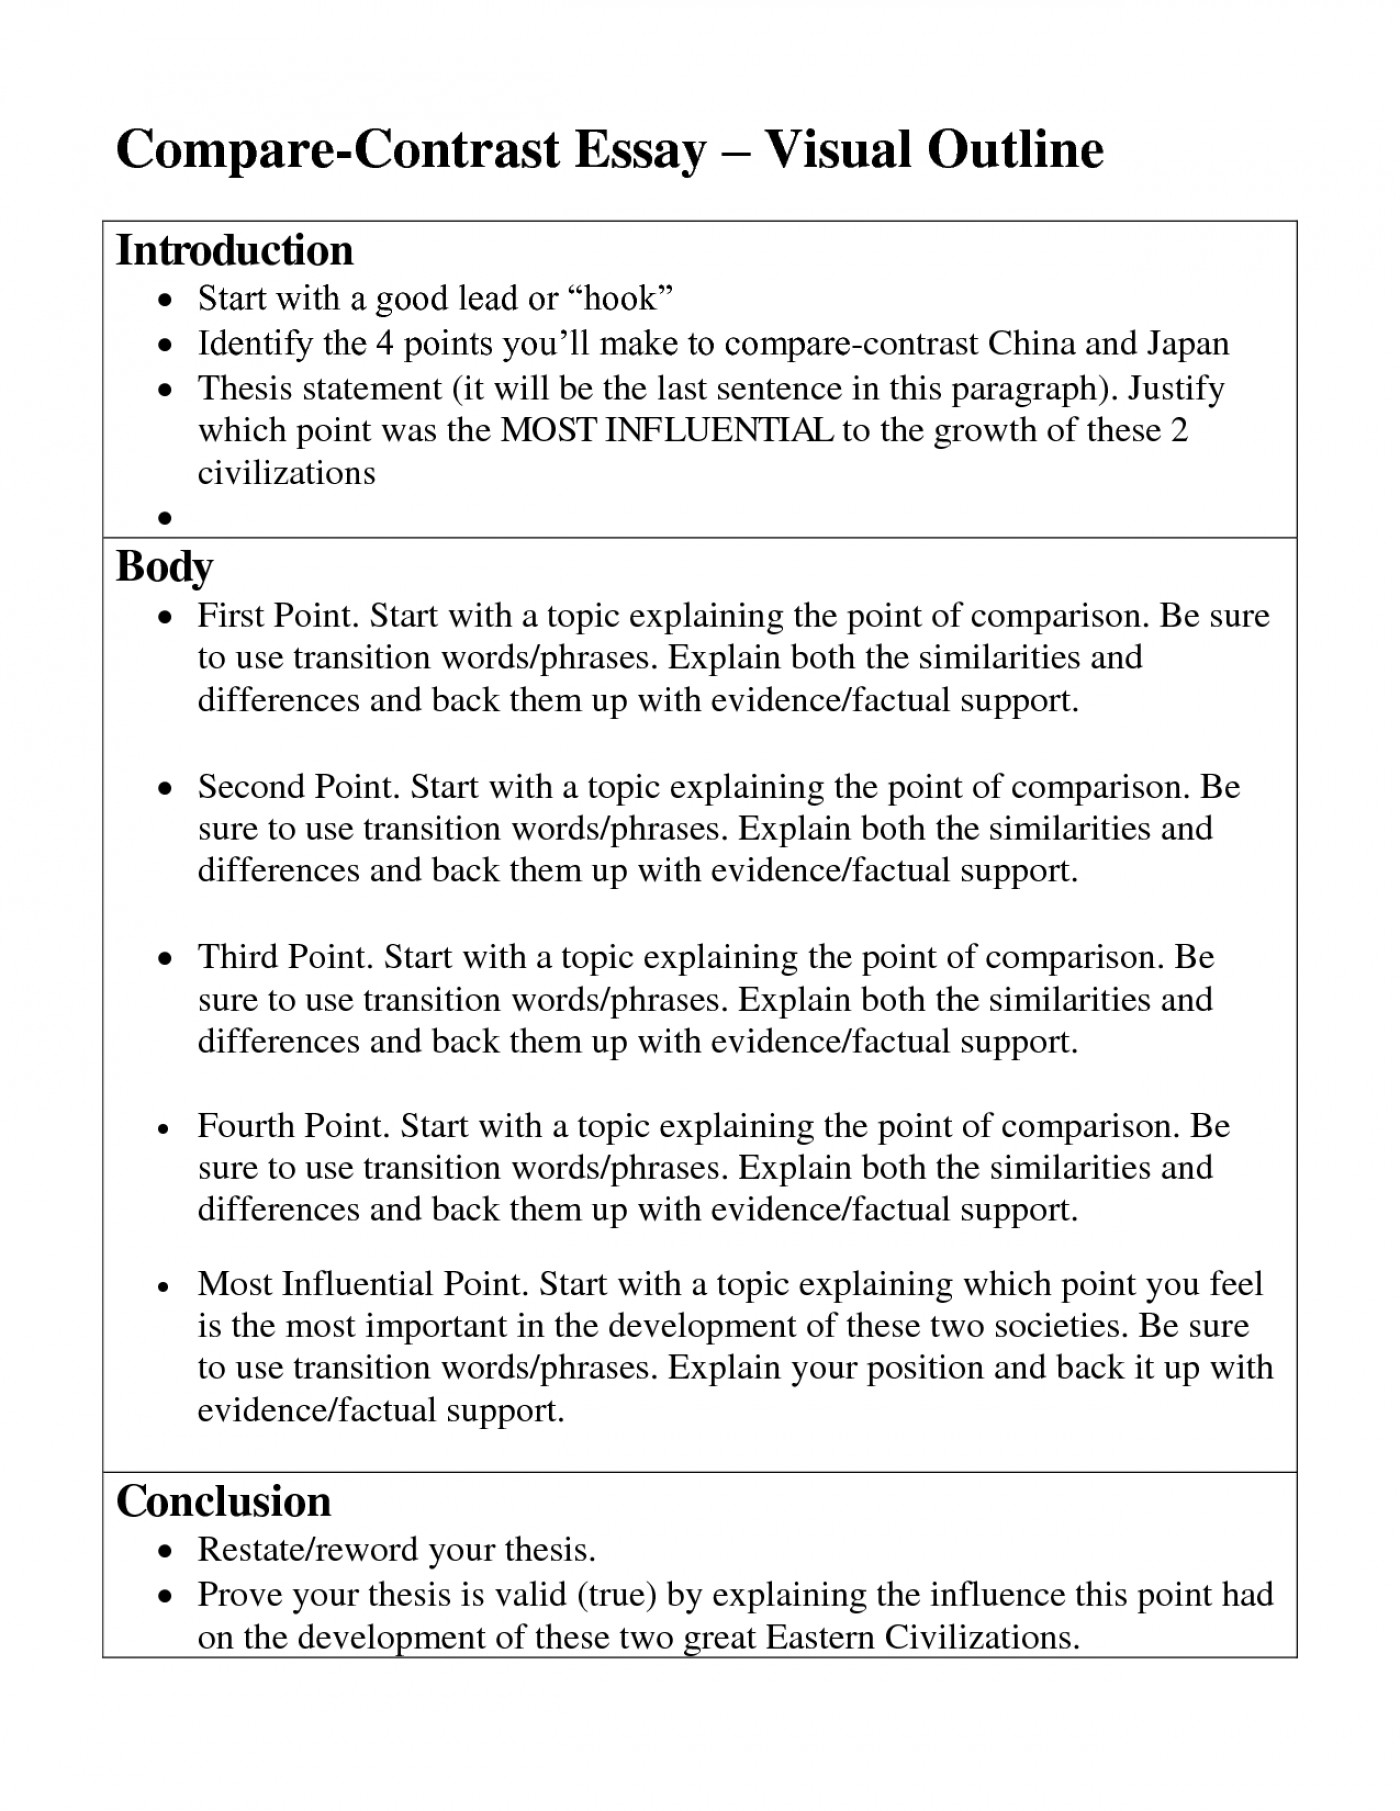 005 How To Write Compare And Contrast Essay Outstanding A Format Block Conclusion Paragraph For Examples 1400